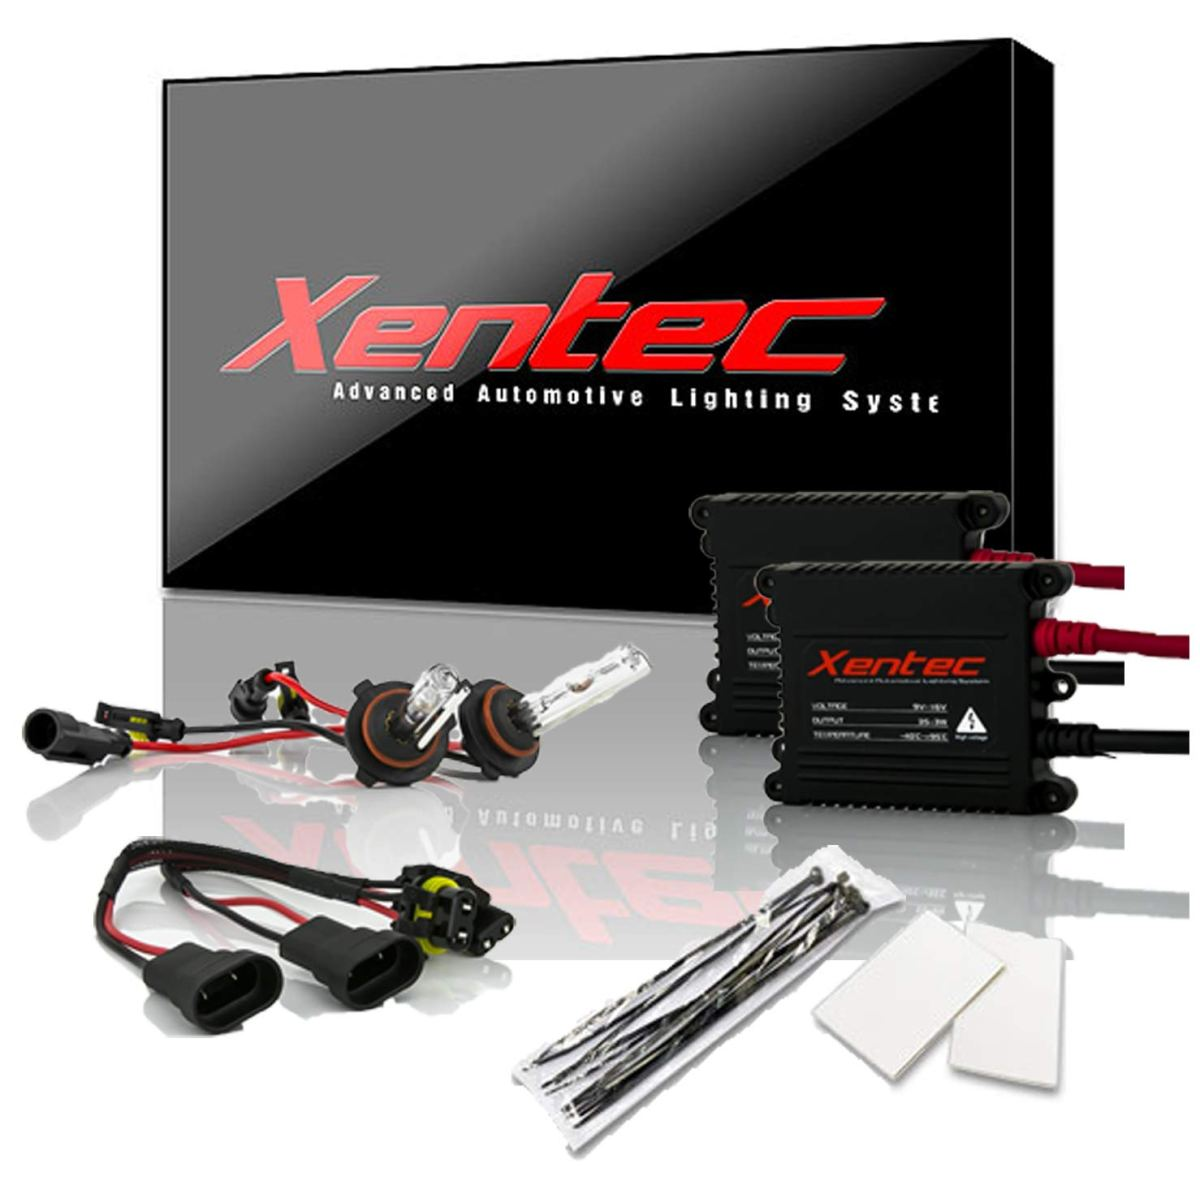 Best HID Headlight Kits Xentec 9005 6000K HID xenon bulb